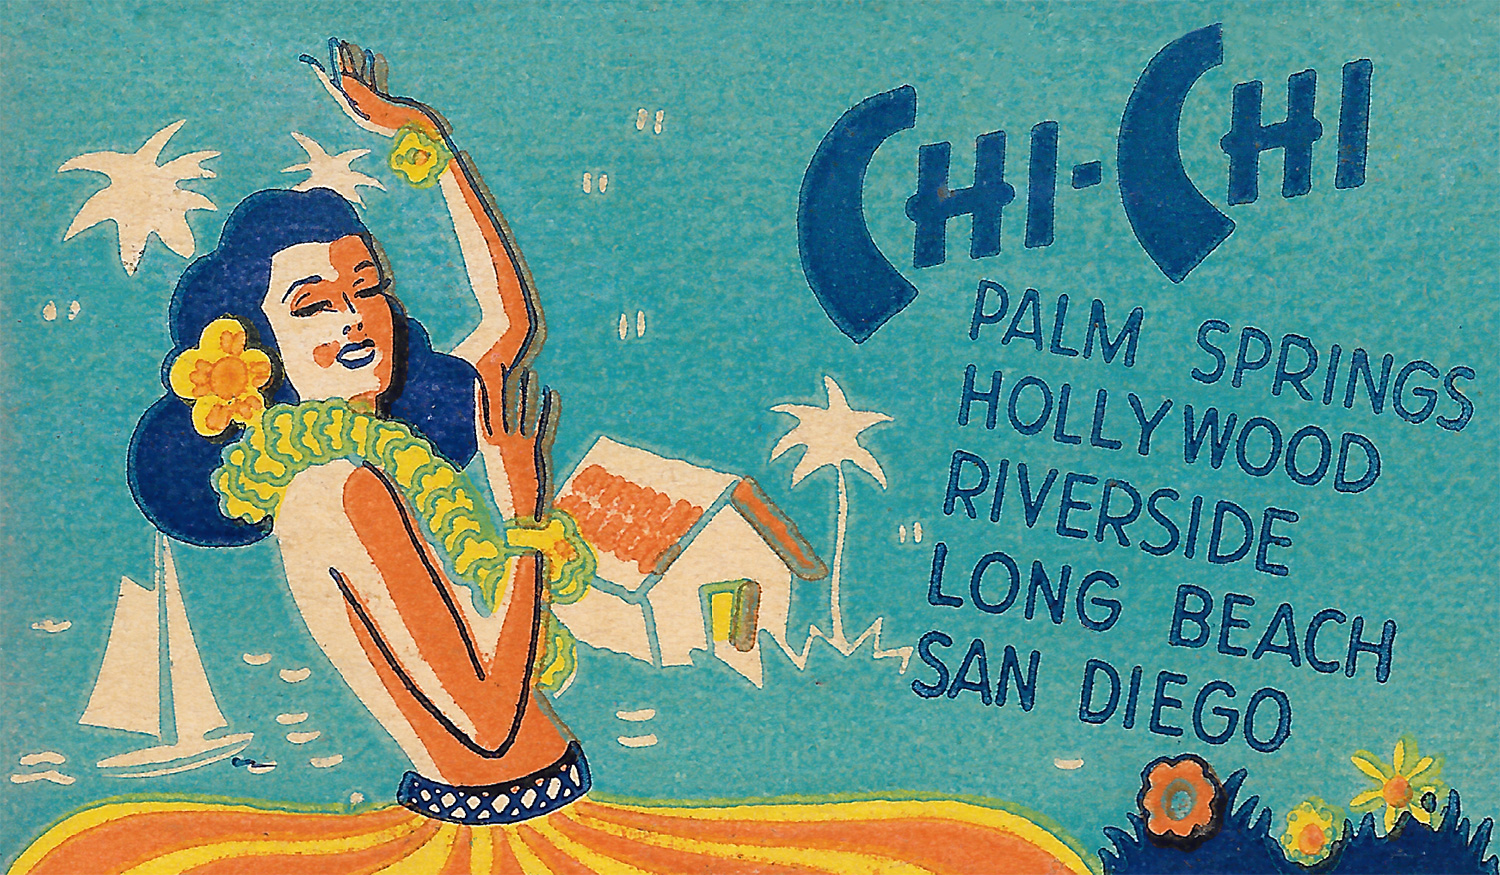 Chi-Chi Restaurants match cover art, c1947